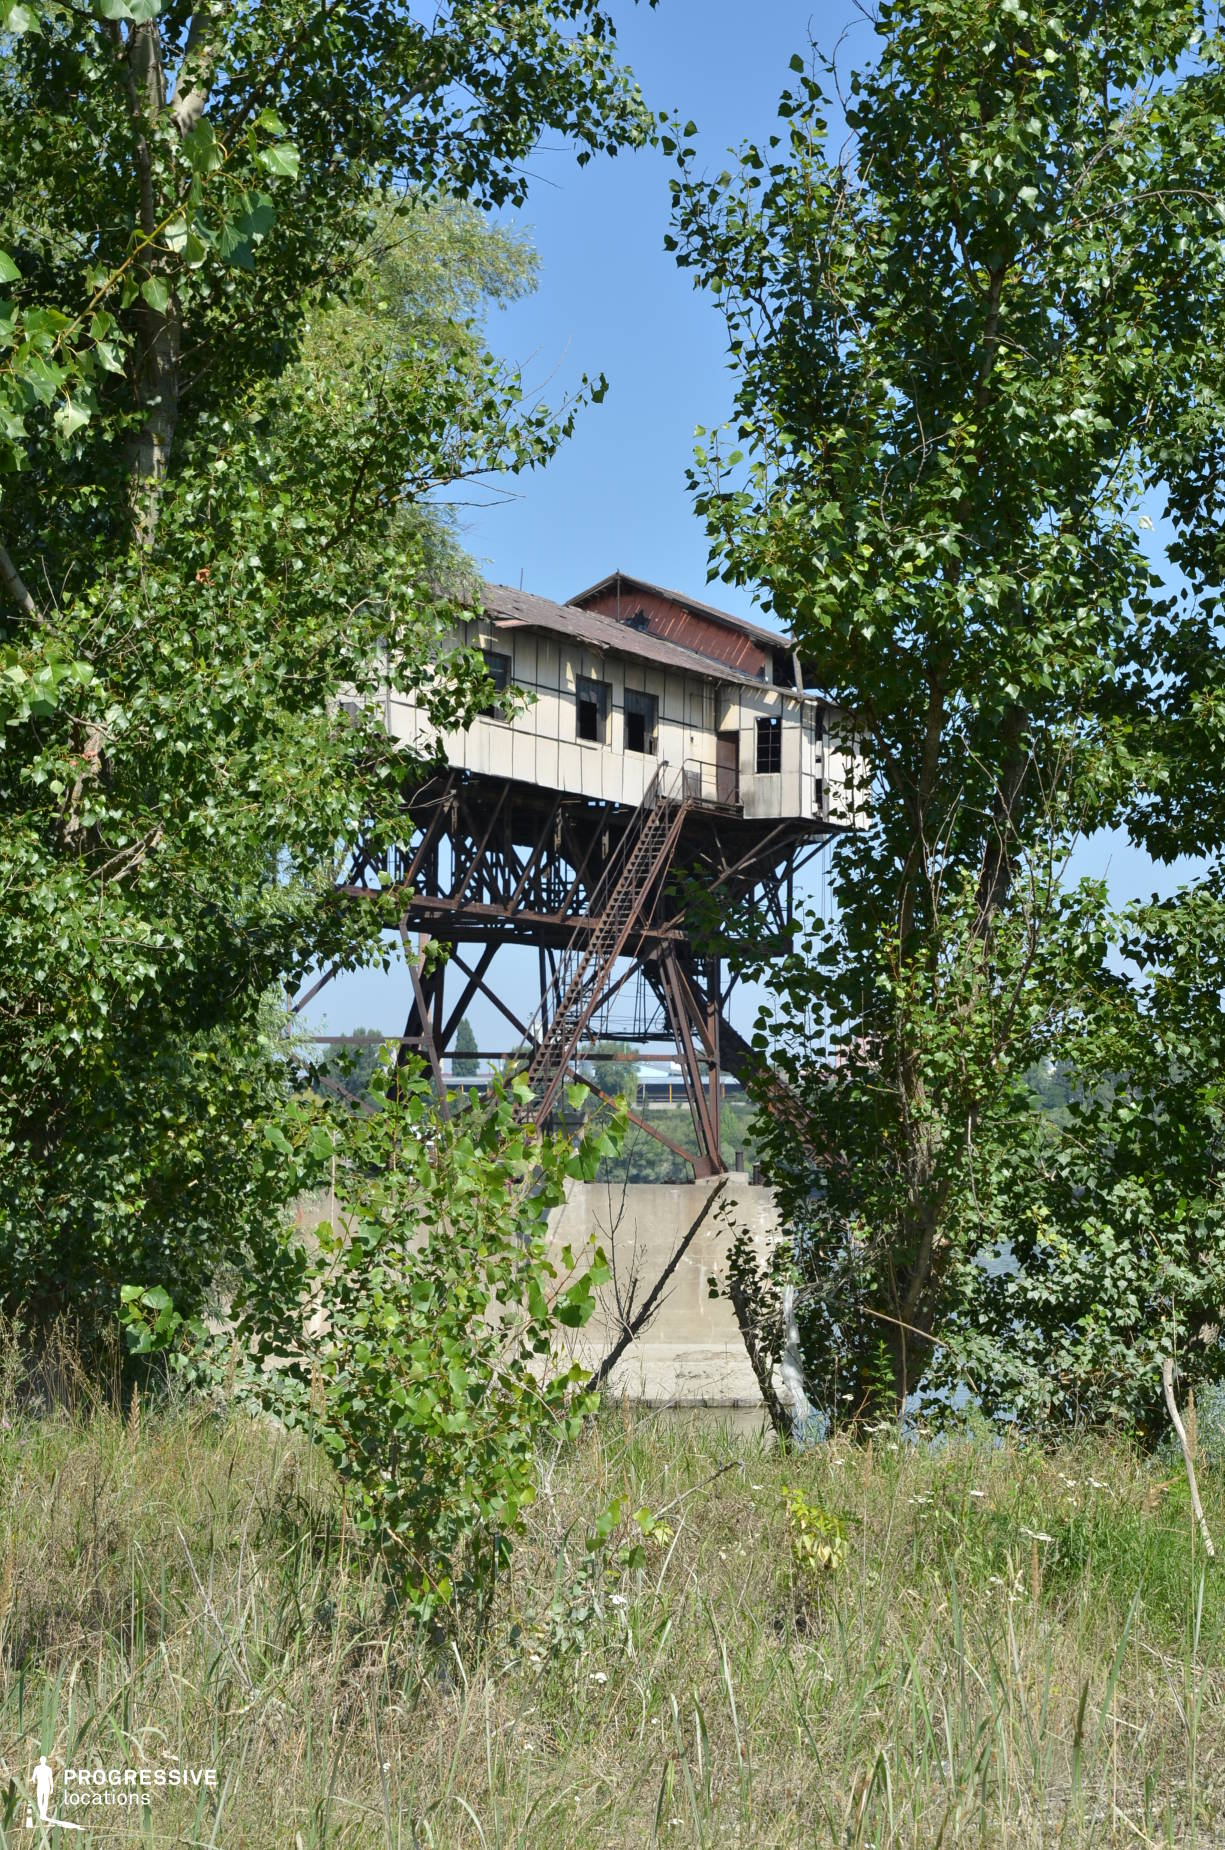 Locations in Hungary: Rivershore %26 Trees, Coal Loading Station, River Danube